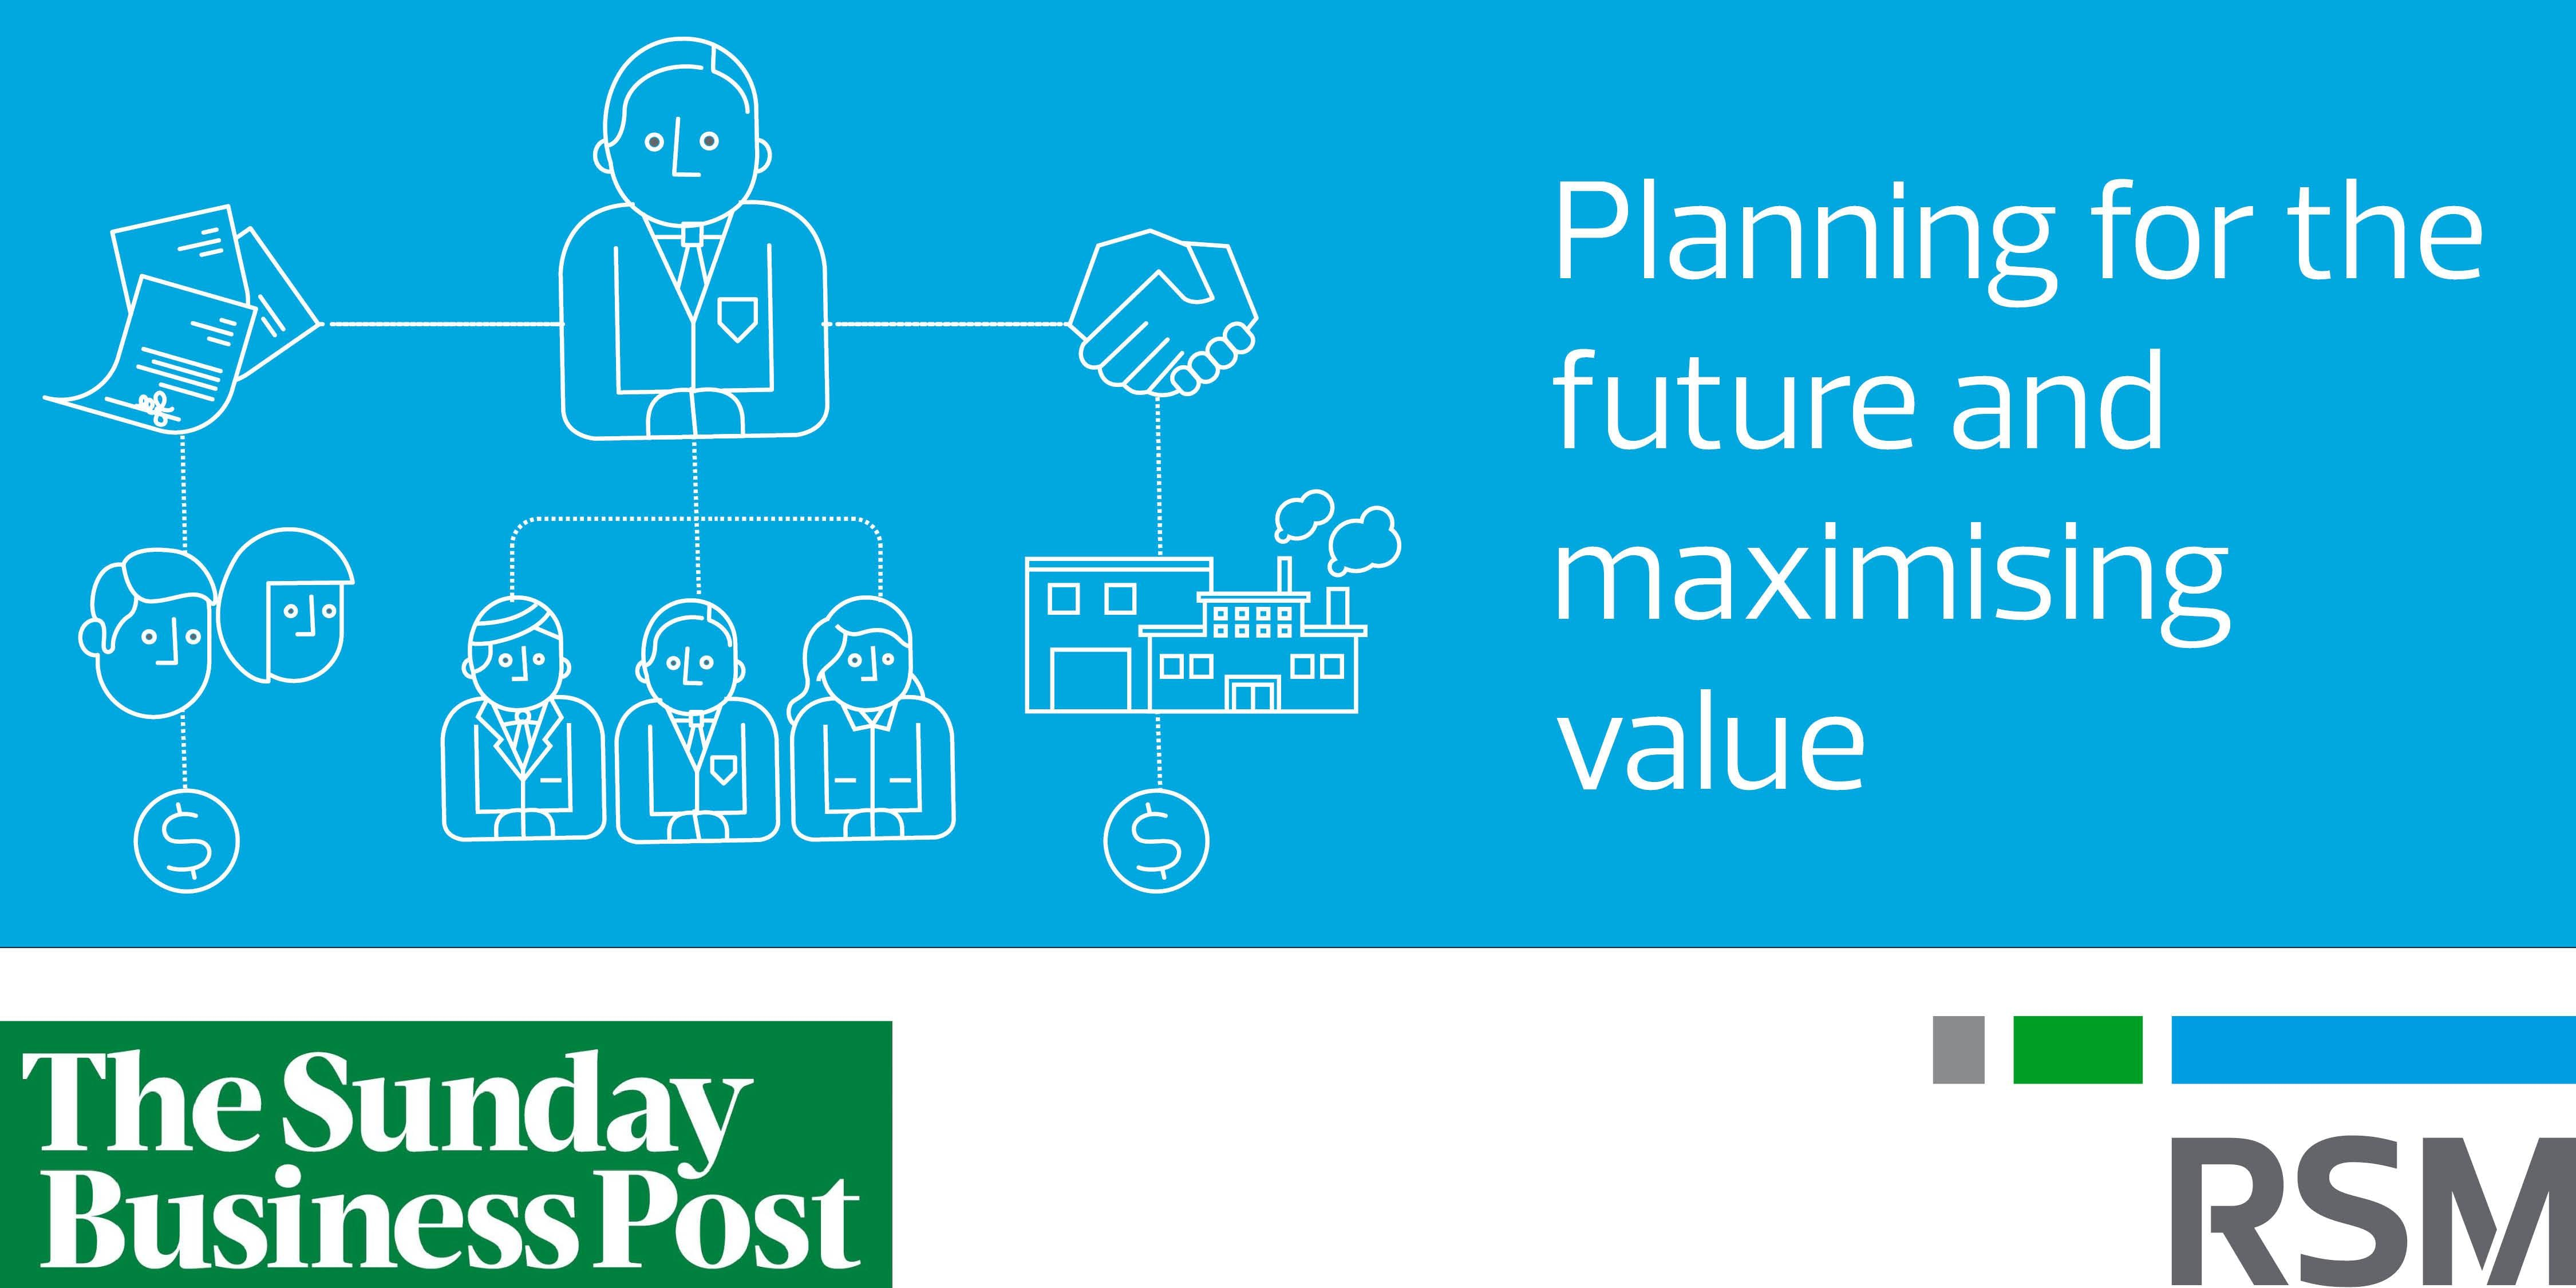 Planning for the future and maximising value